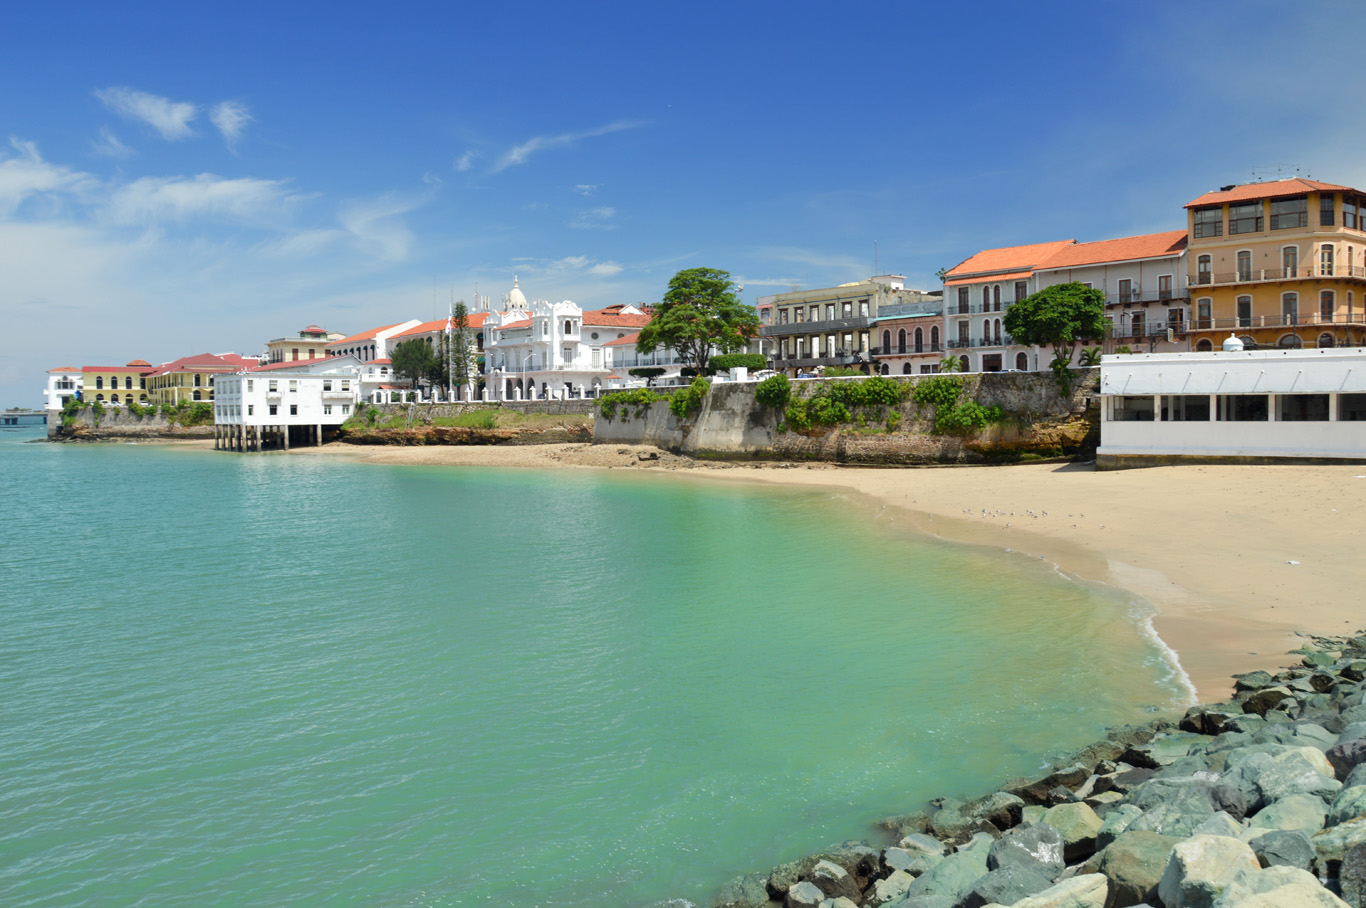 Casco Viejo from a distance